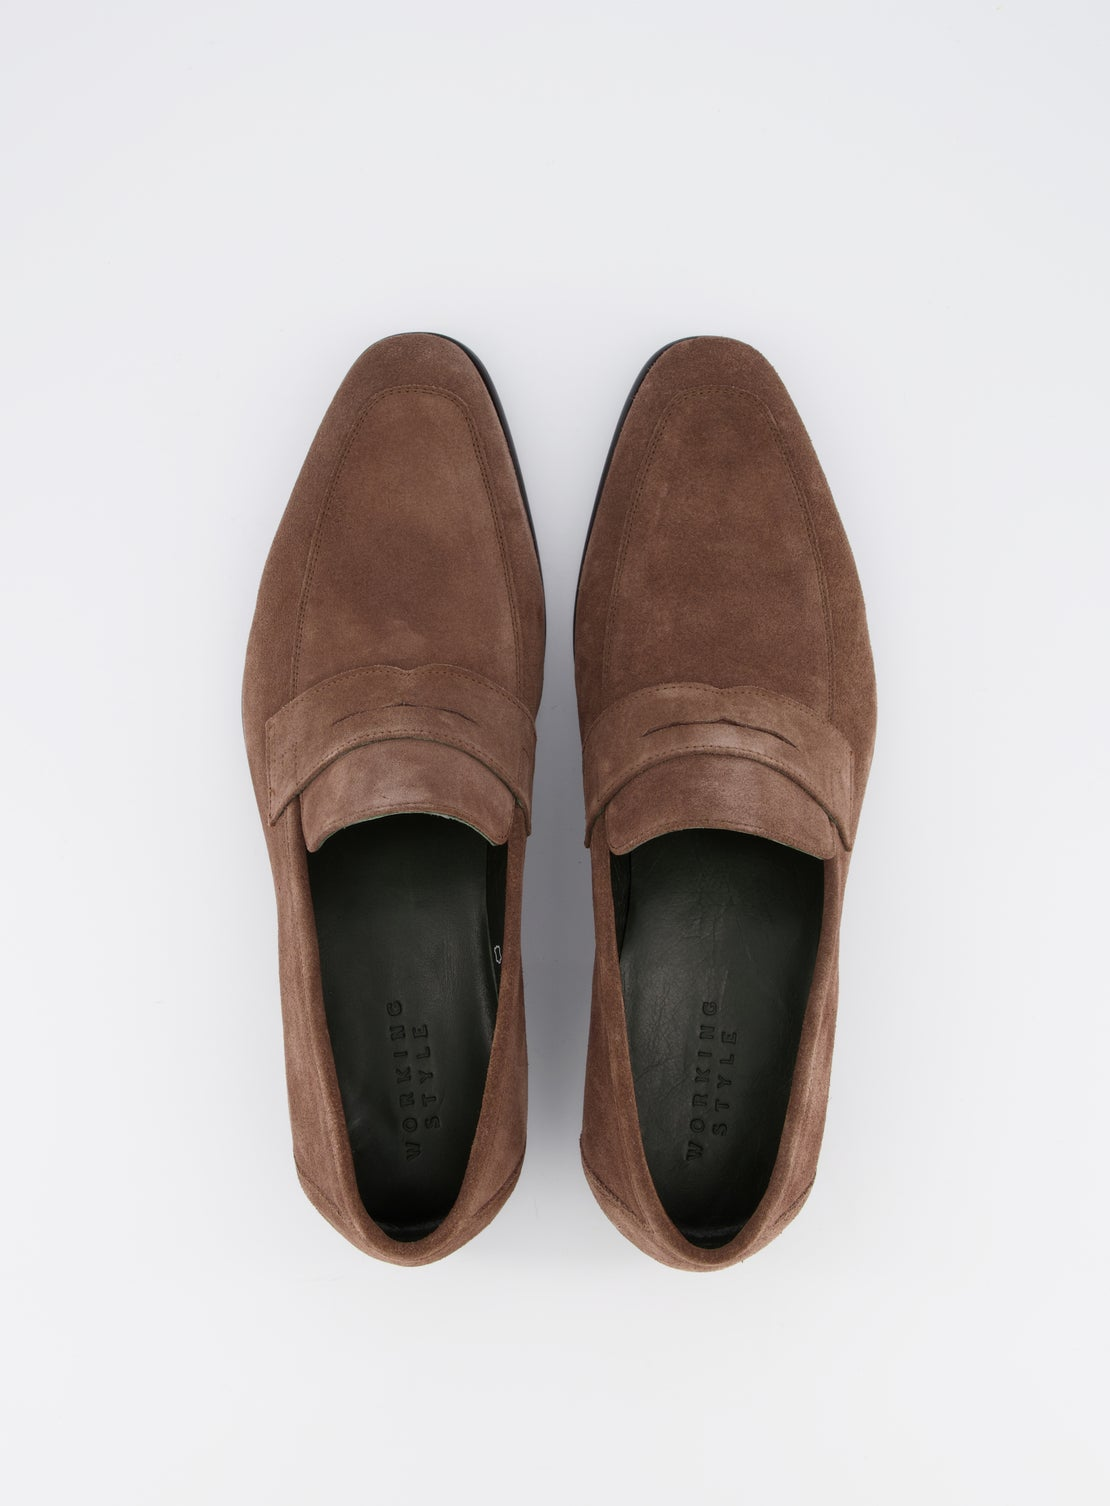 Weller Chocolate Suede Loafer